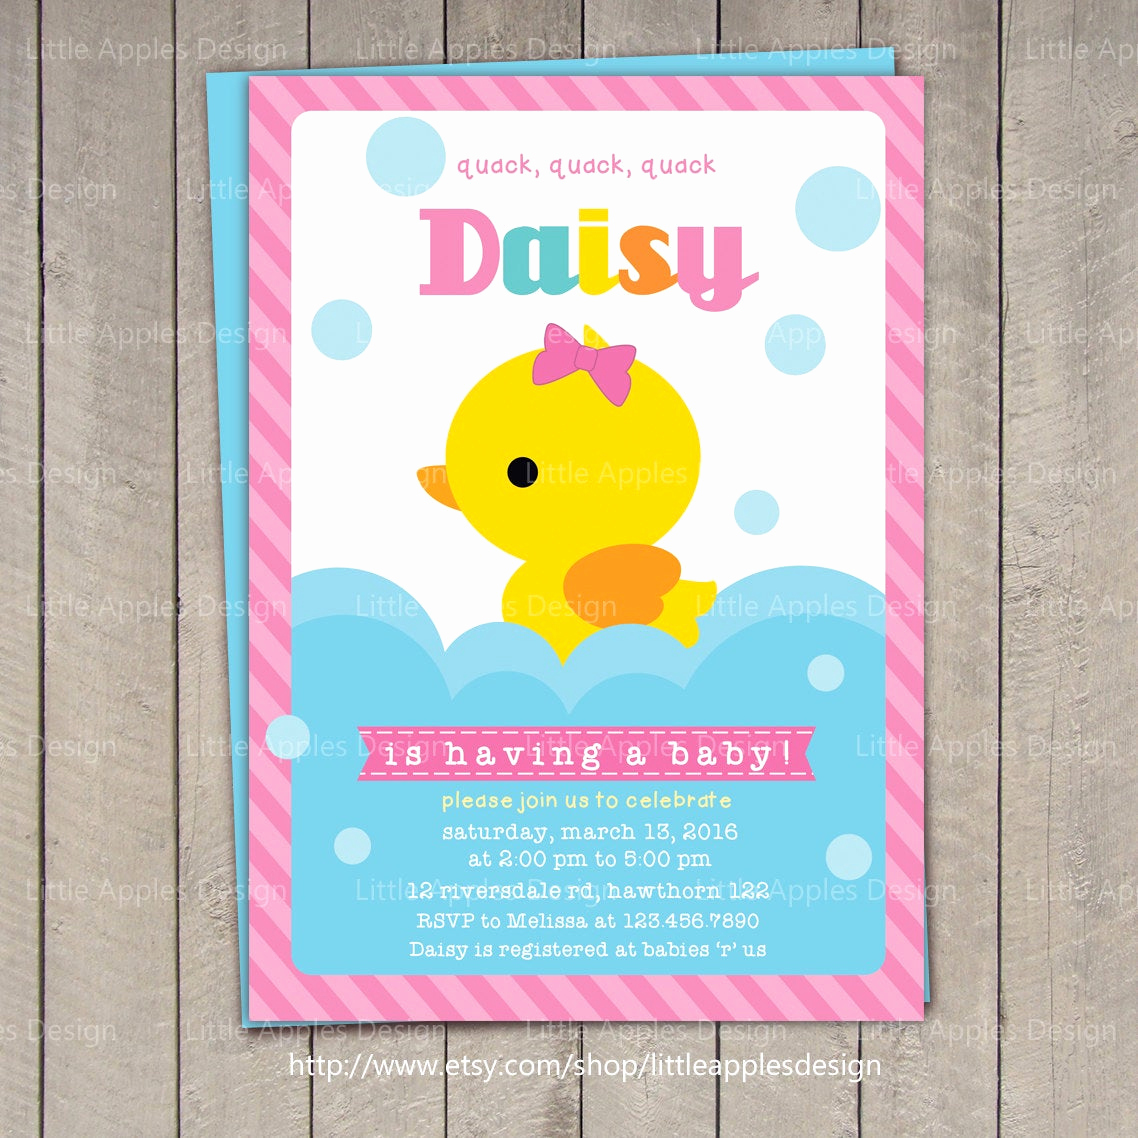 Rubber Duck Baby Shower Invitation Lovely Duck Baby Shower Invitation Rubber Duck Baby Shower